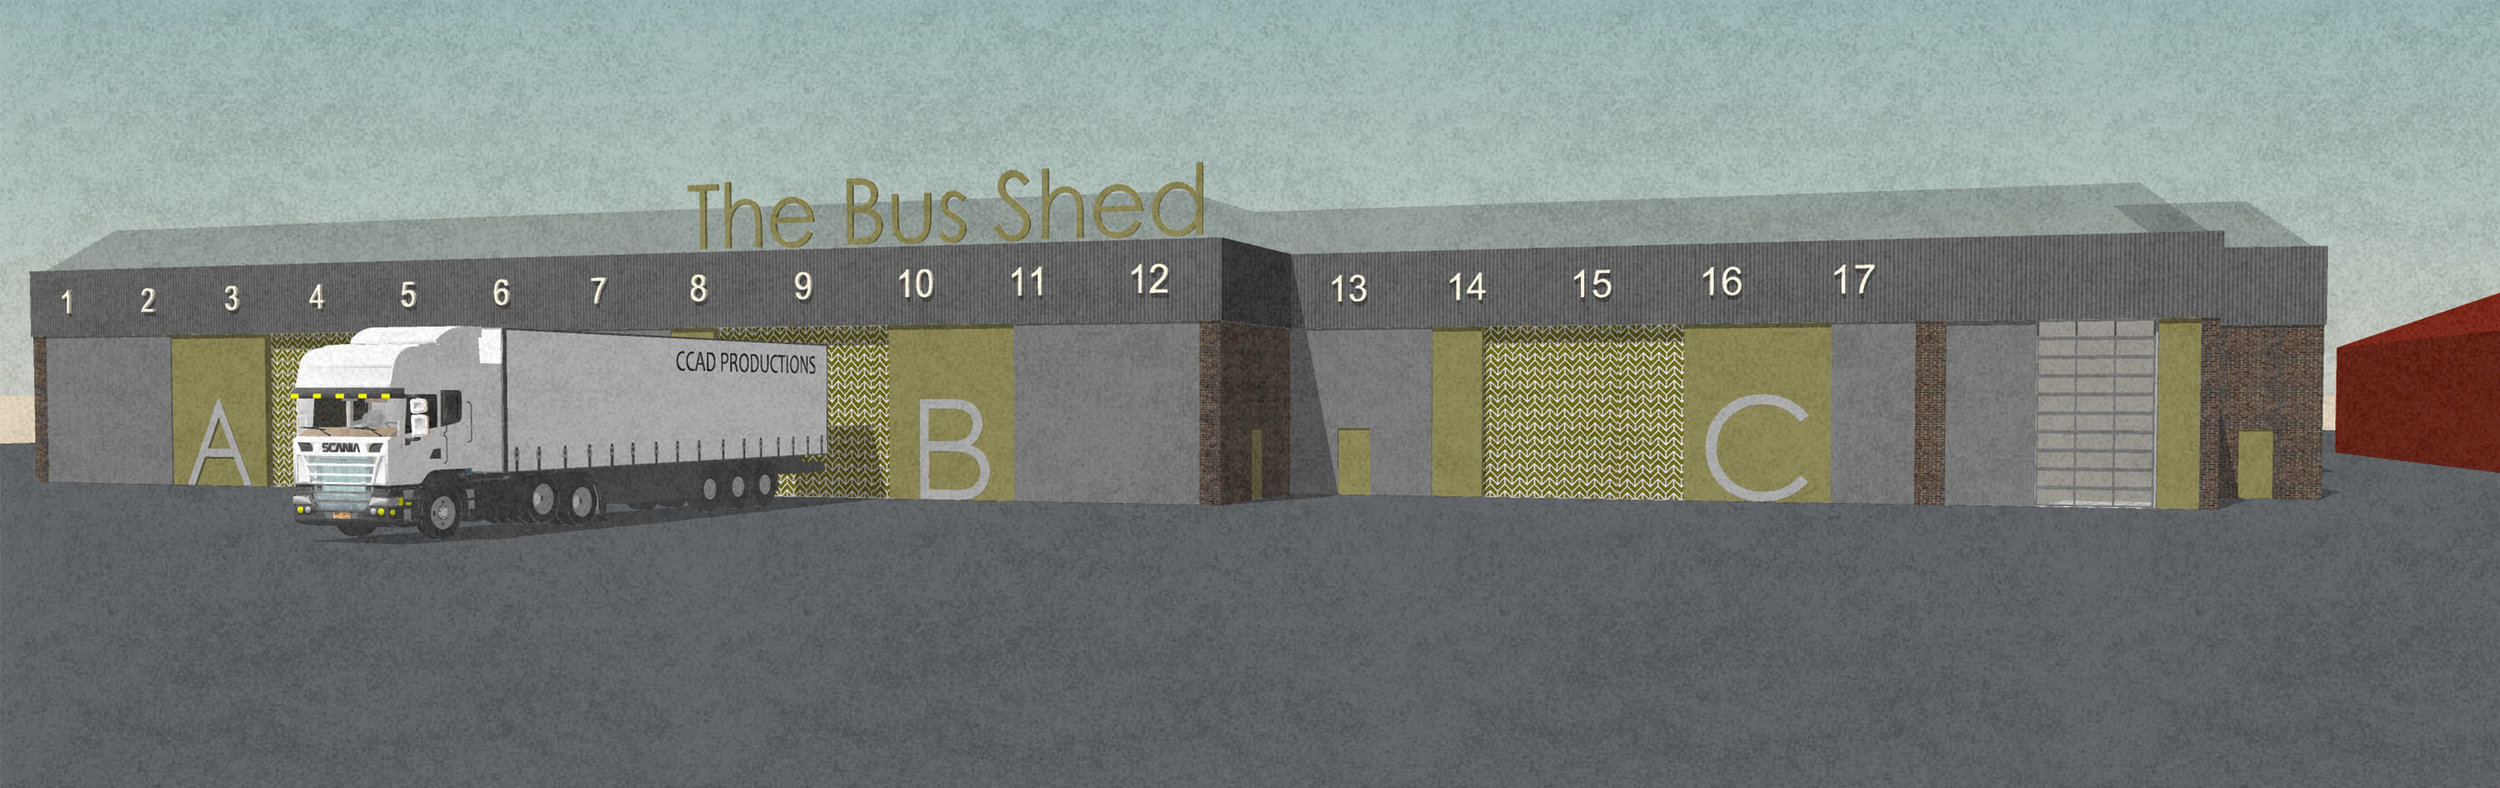 Niven - The Bus Shed Studios 2.jpg